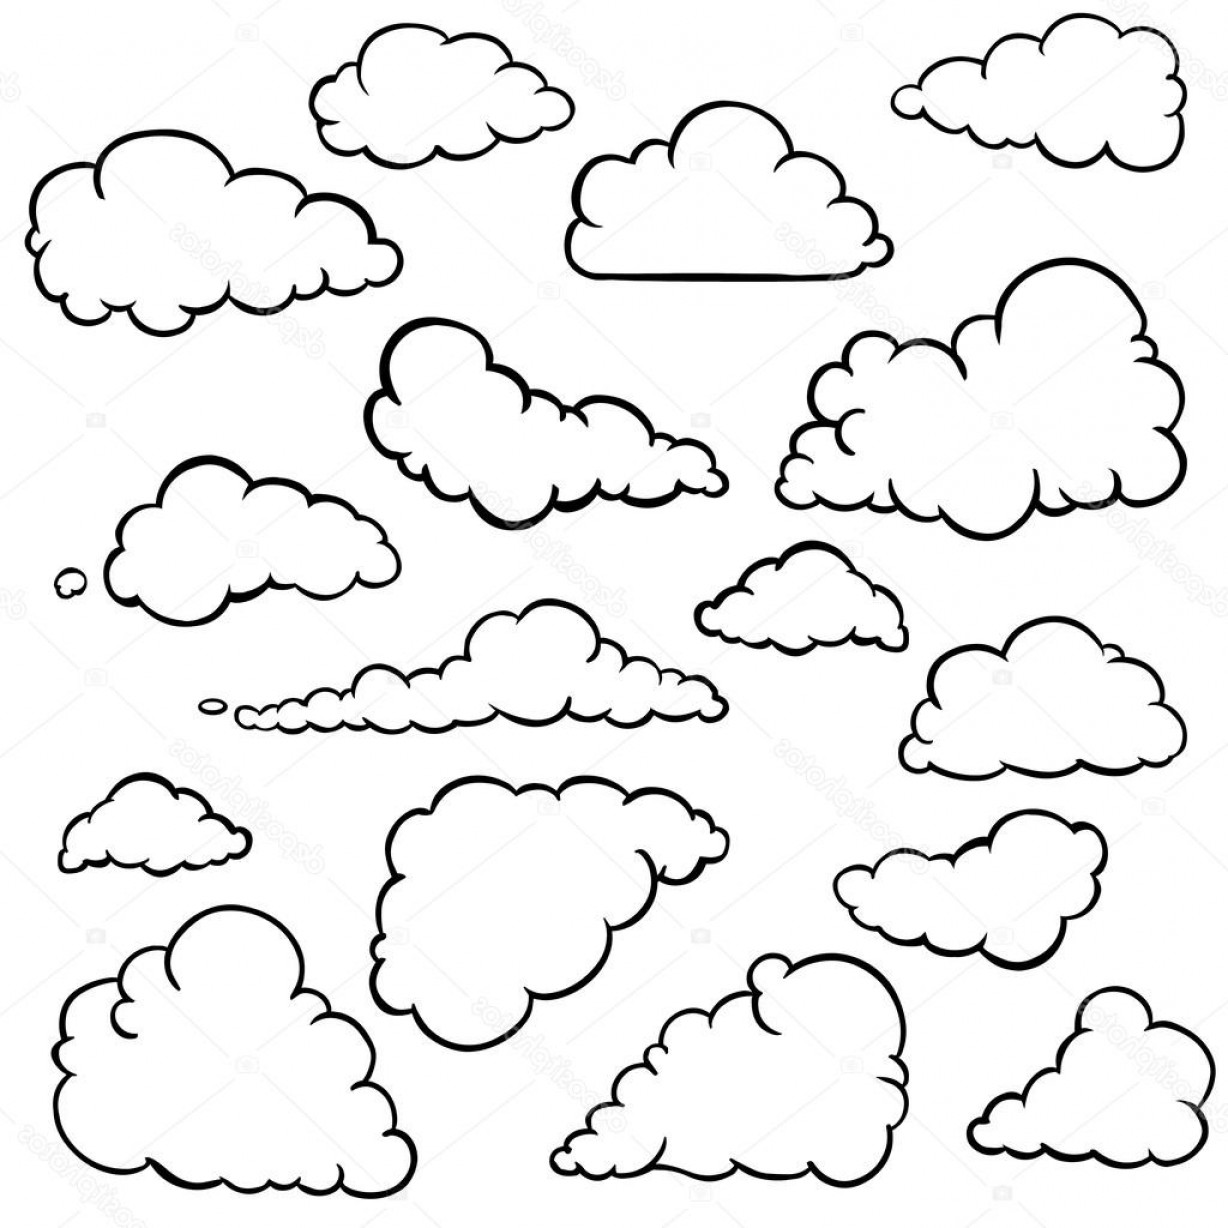 Cloud Outline Vector Black And White: Stock Illustration Vector Set Of Outline Clouds